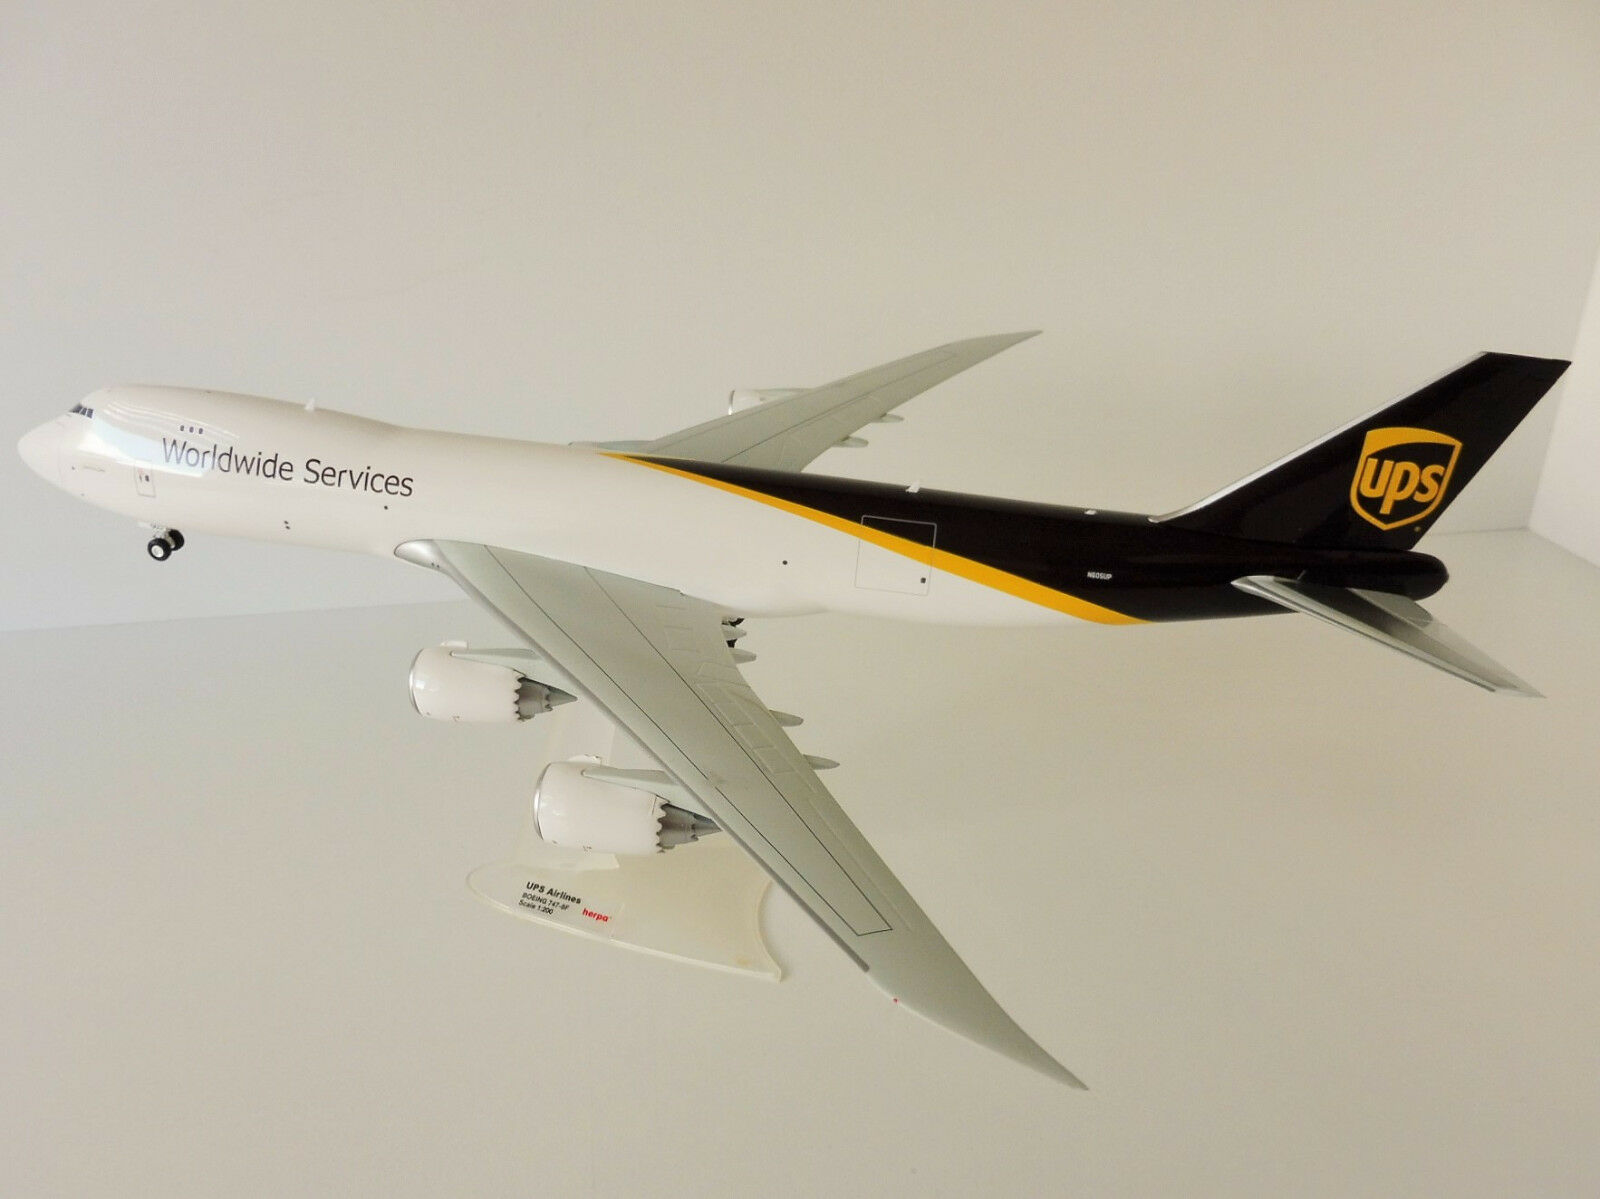 Boeing 747-8f UPS Airlines 1 200 Herpa 558822 747 747-8 Freighter nave da trasporto